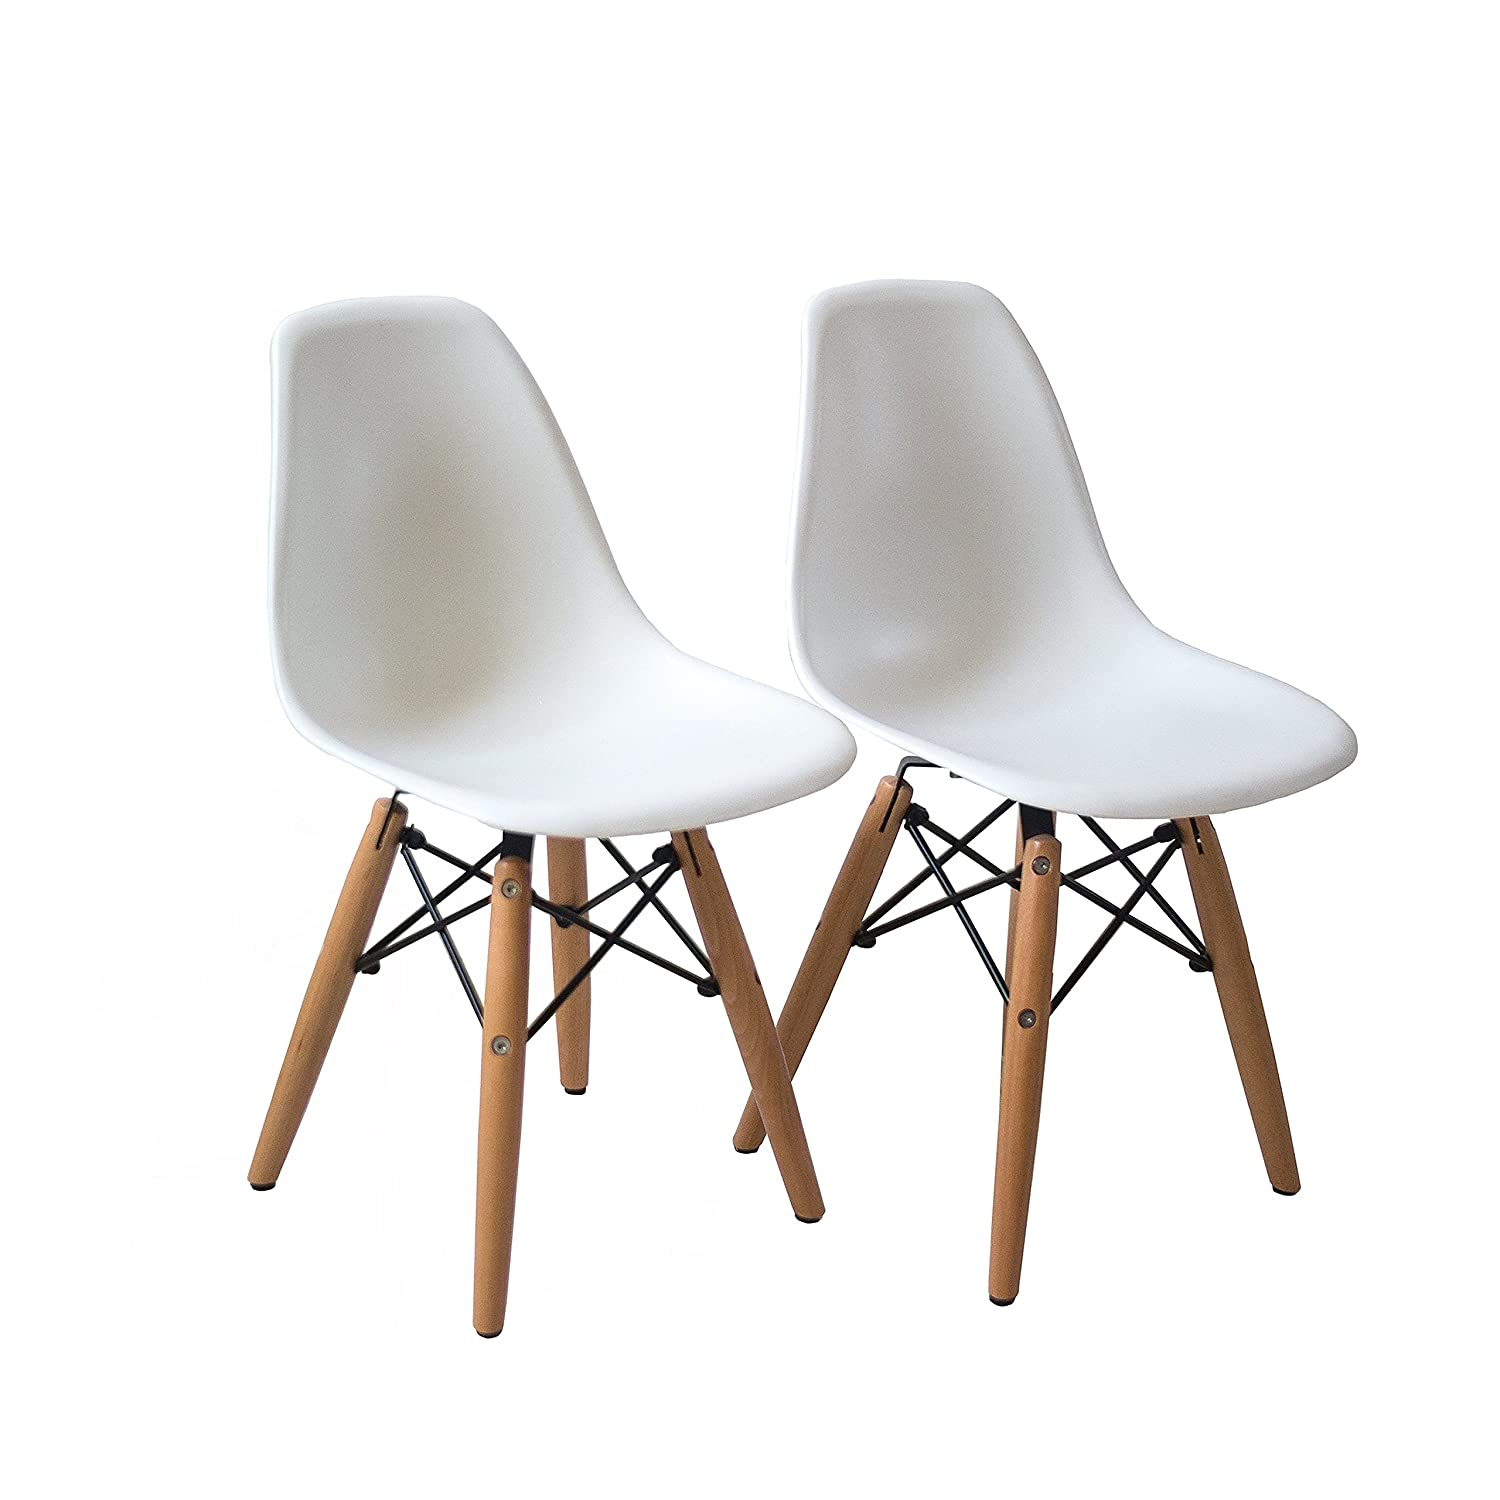 amazoncom buschman set of table and  white kids eames style  - amazoncom buschman set of table and  white kids eames style retro moderndining room mid century shell chair metal natural wood dowel leg baseplastic